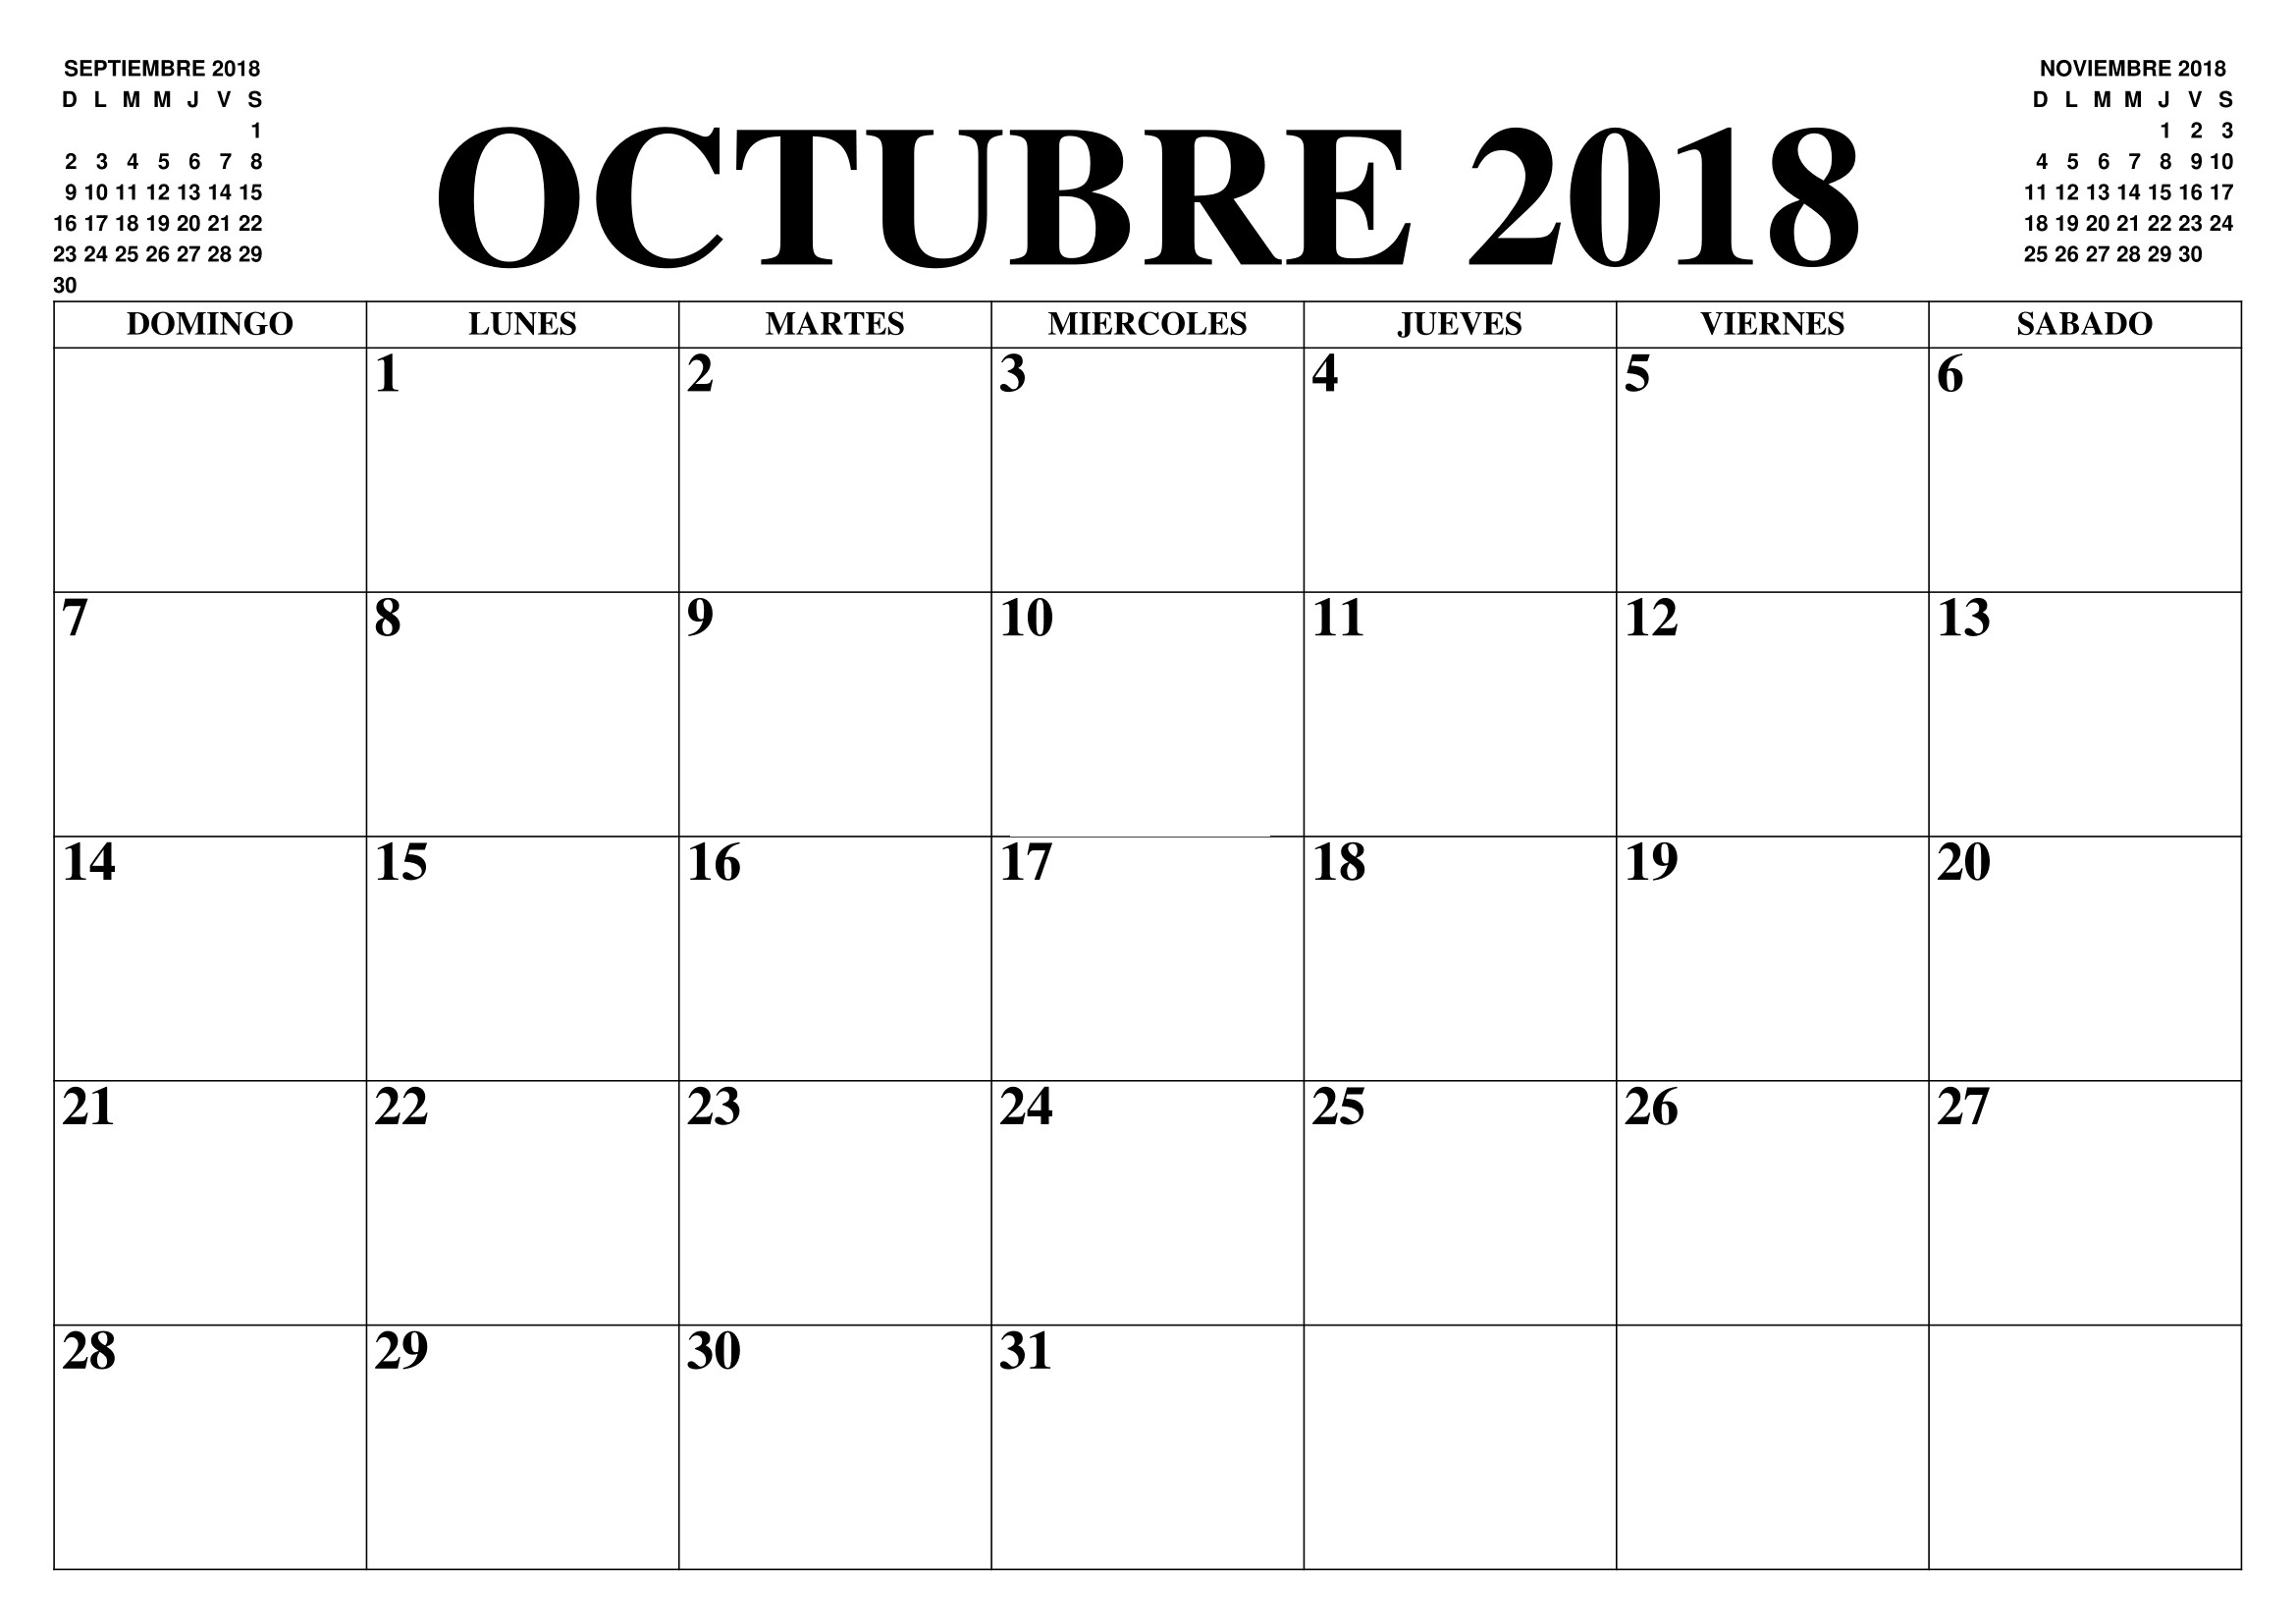 Calendario Mes De Noviembre 2017 Para Imprimir Gratis Más Actual Best Calendario Del Mes De Octubre Image Collection Of Calendario Mes De Noviembre 2017 Para Imprimir Gratis Más Reciente 472 Best Agenda Images On Pinterest